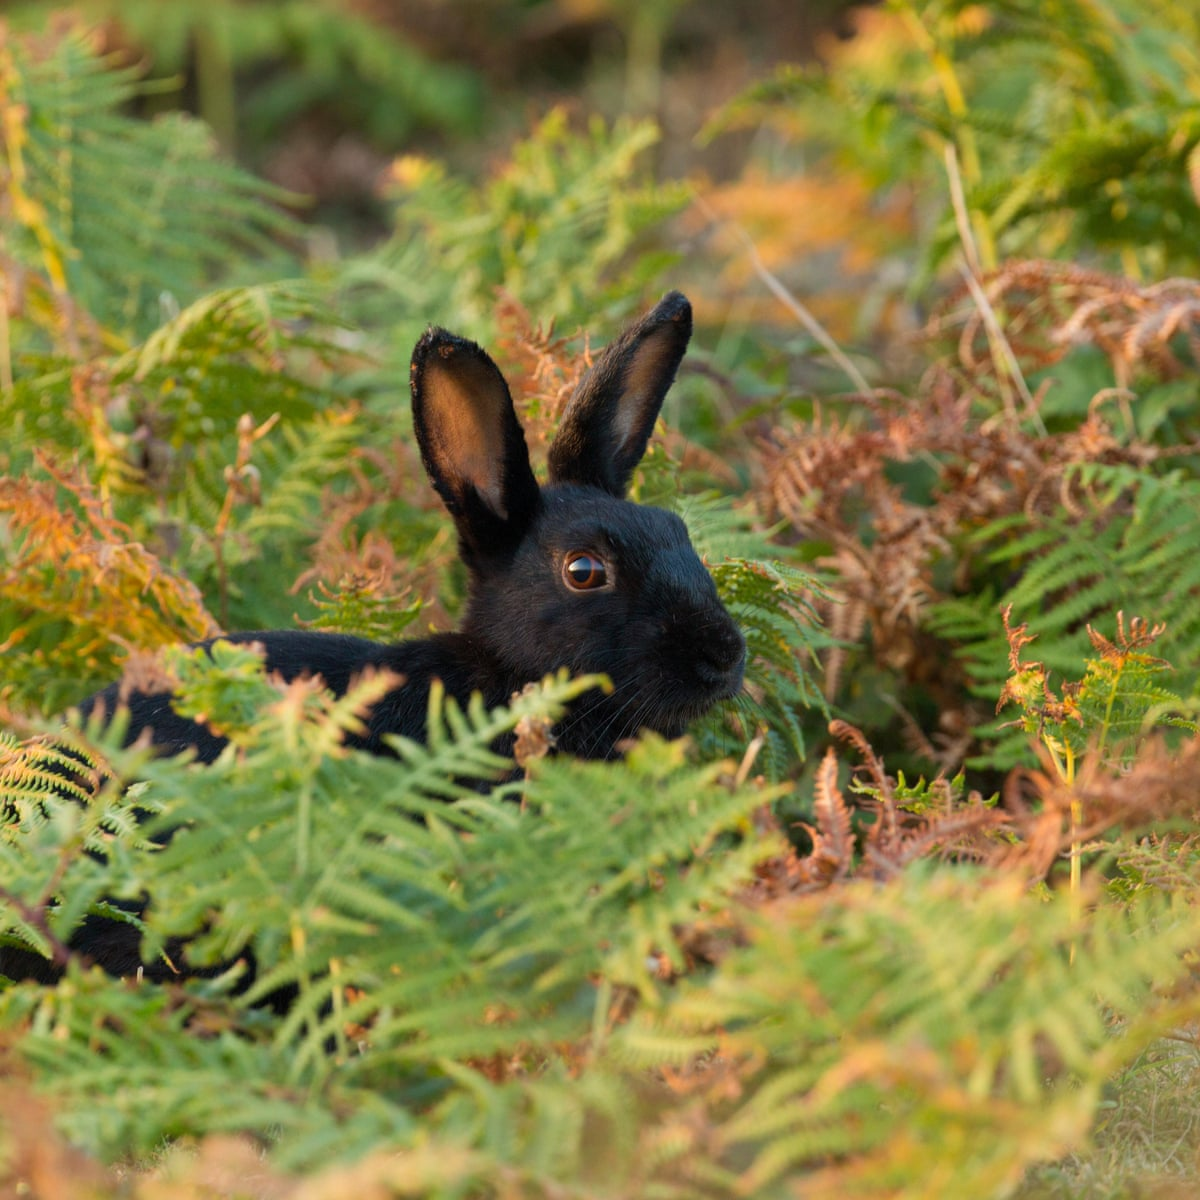 Country diary 1919: black rabbits in the wild | Animals | The Guardian